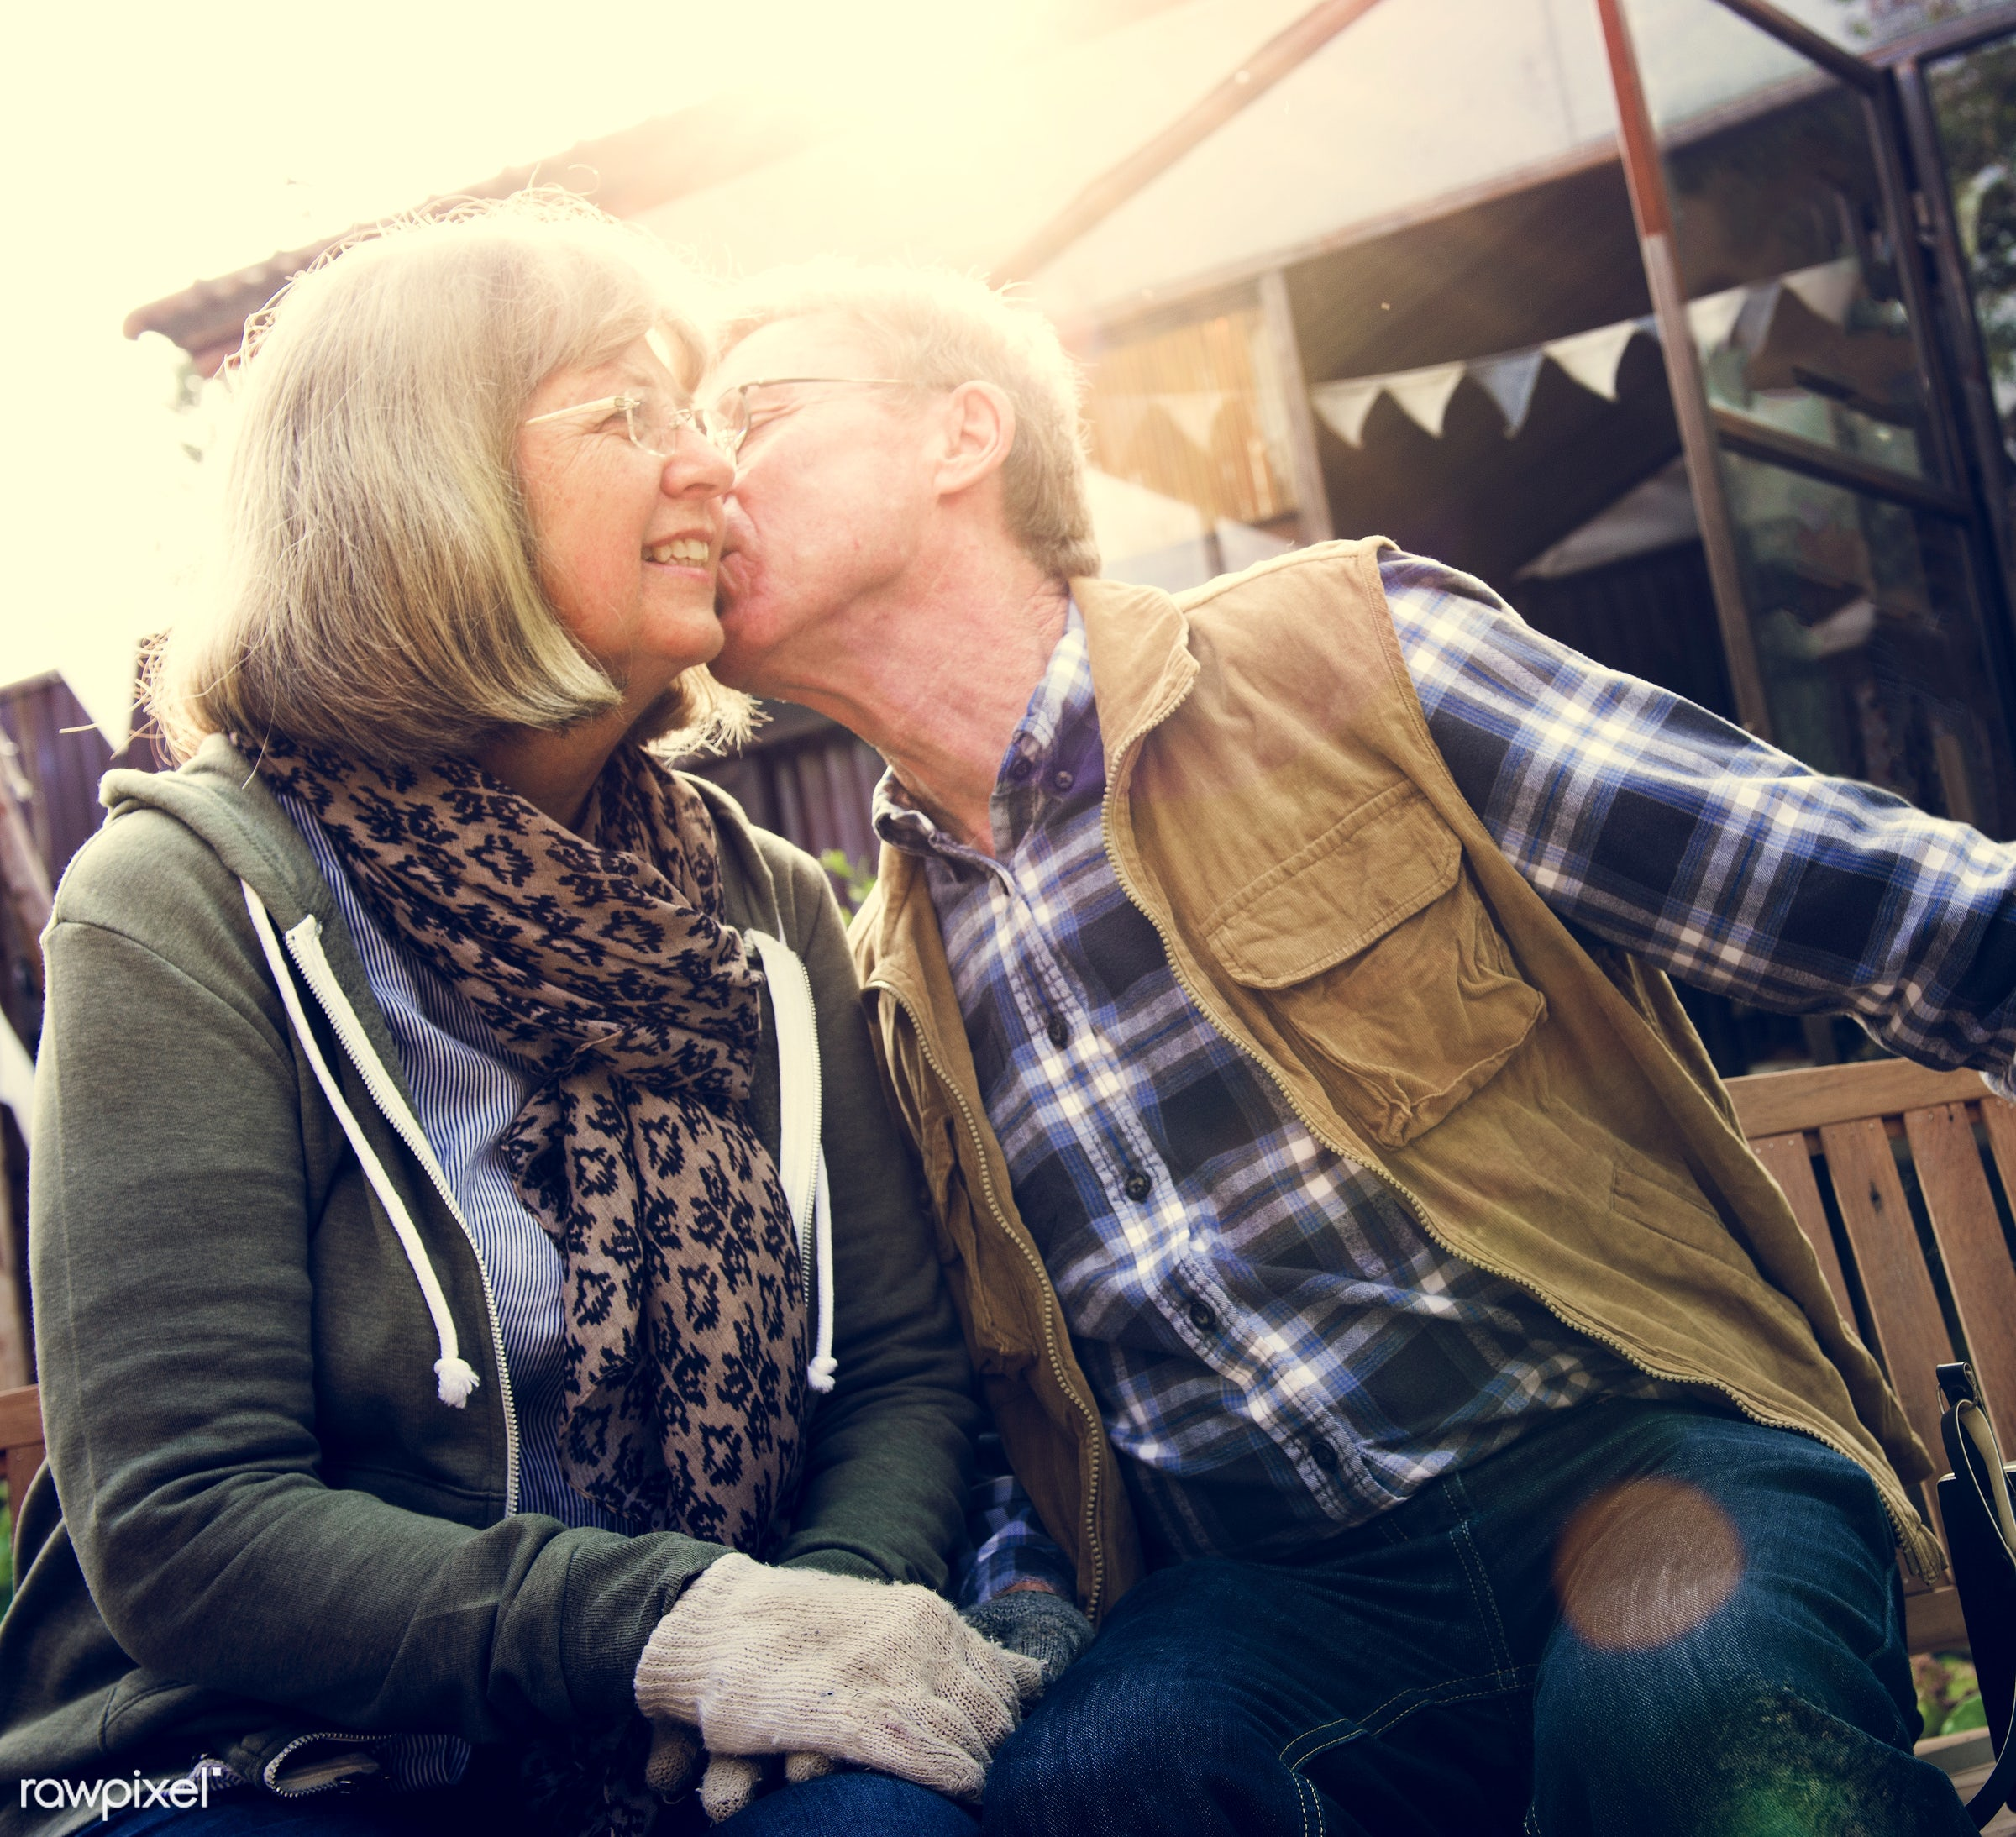 expression, person, show, smitten, people, together, love, kiss, retirement, cherish, family, woman, lifestyle, intimate,...